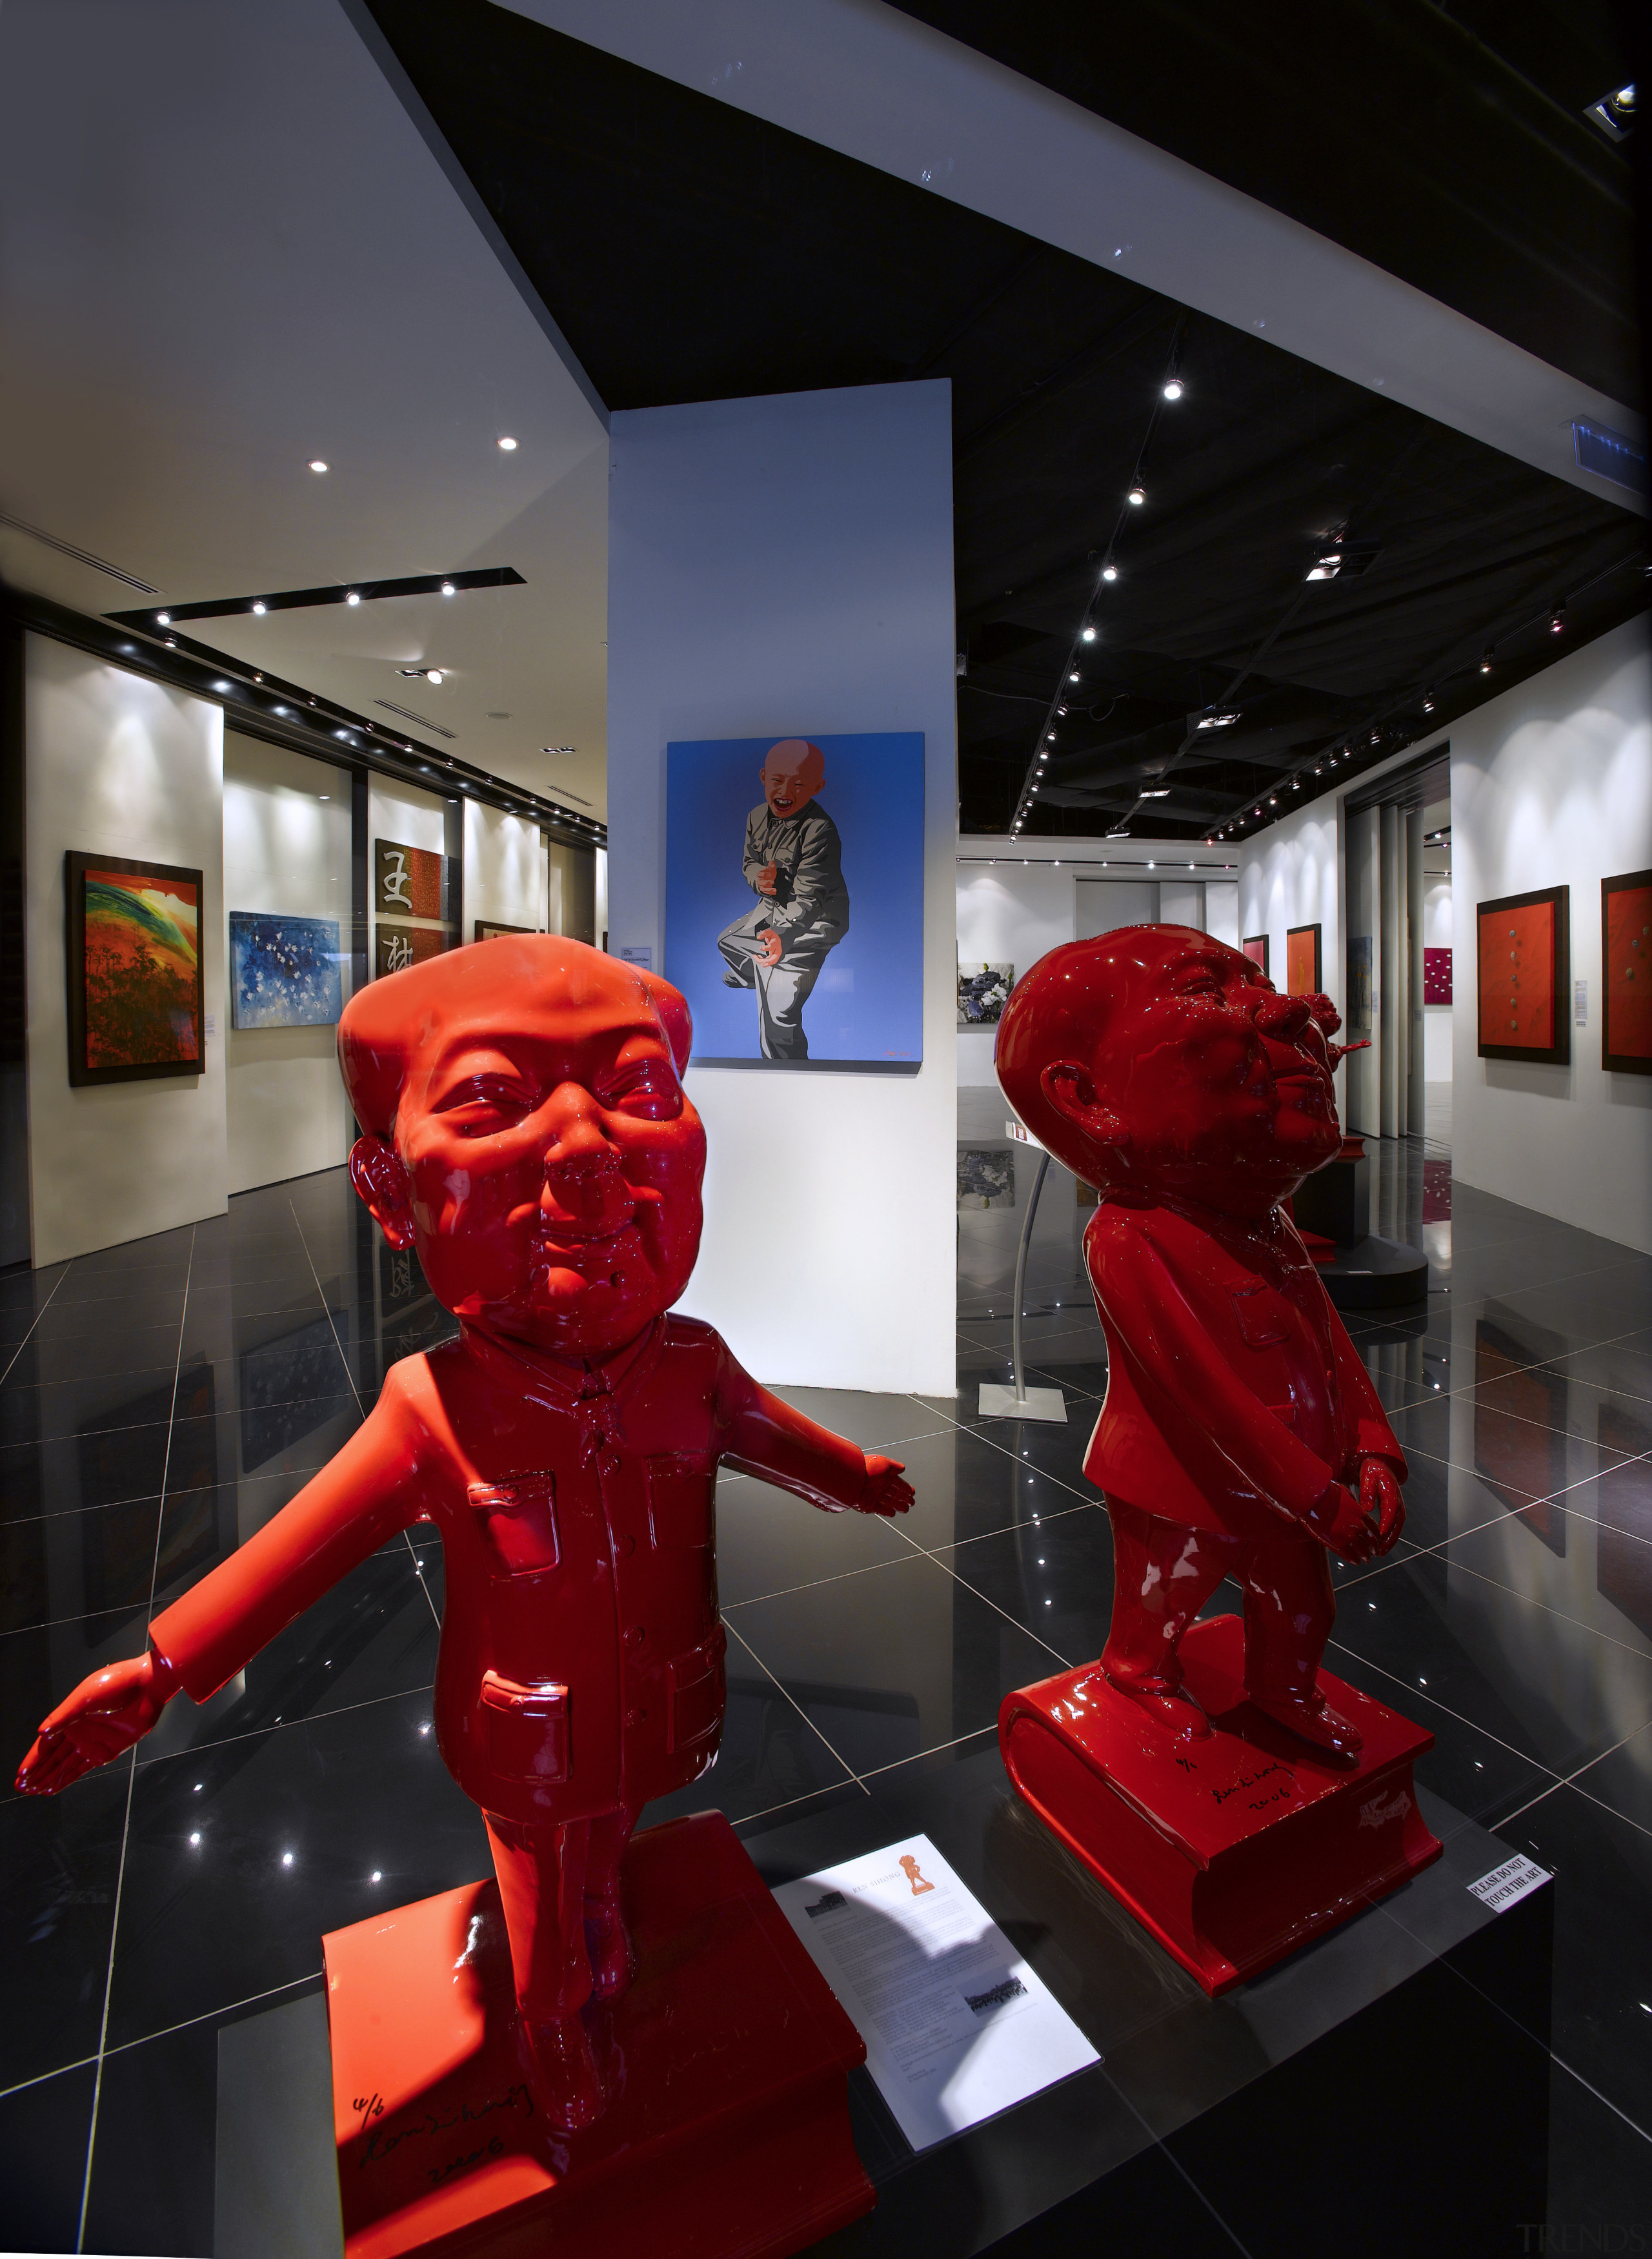 Interior view of the Art Gallery by Designworx, display window, exhibition, interior design, technology, black, red